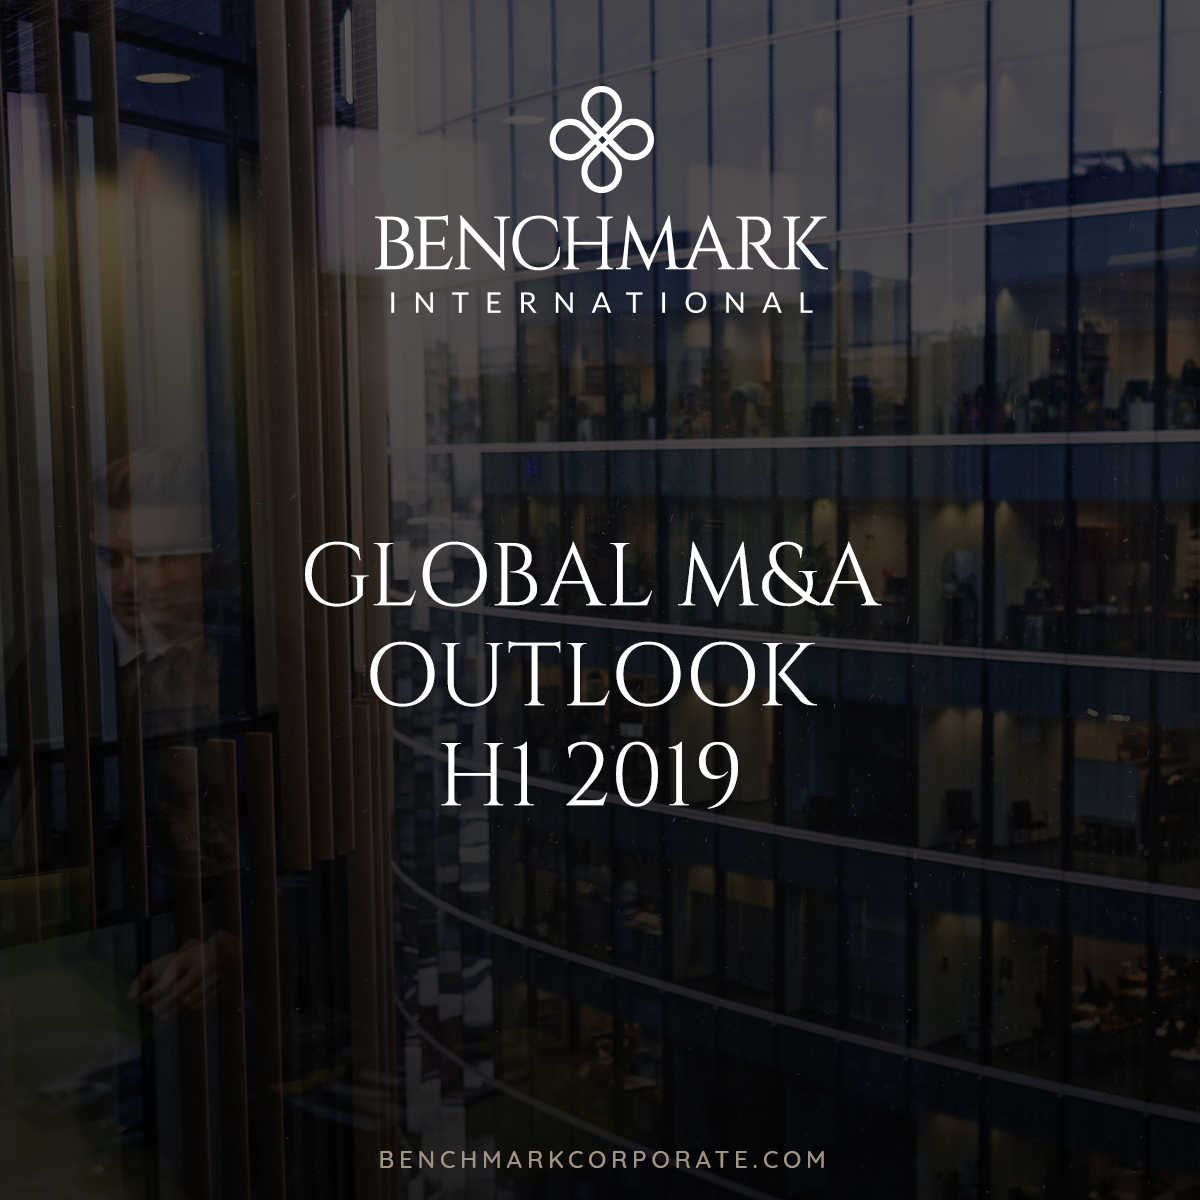 Global M&A Outlook H1 2019